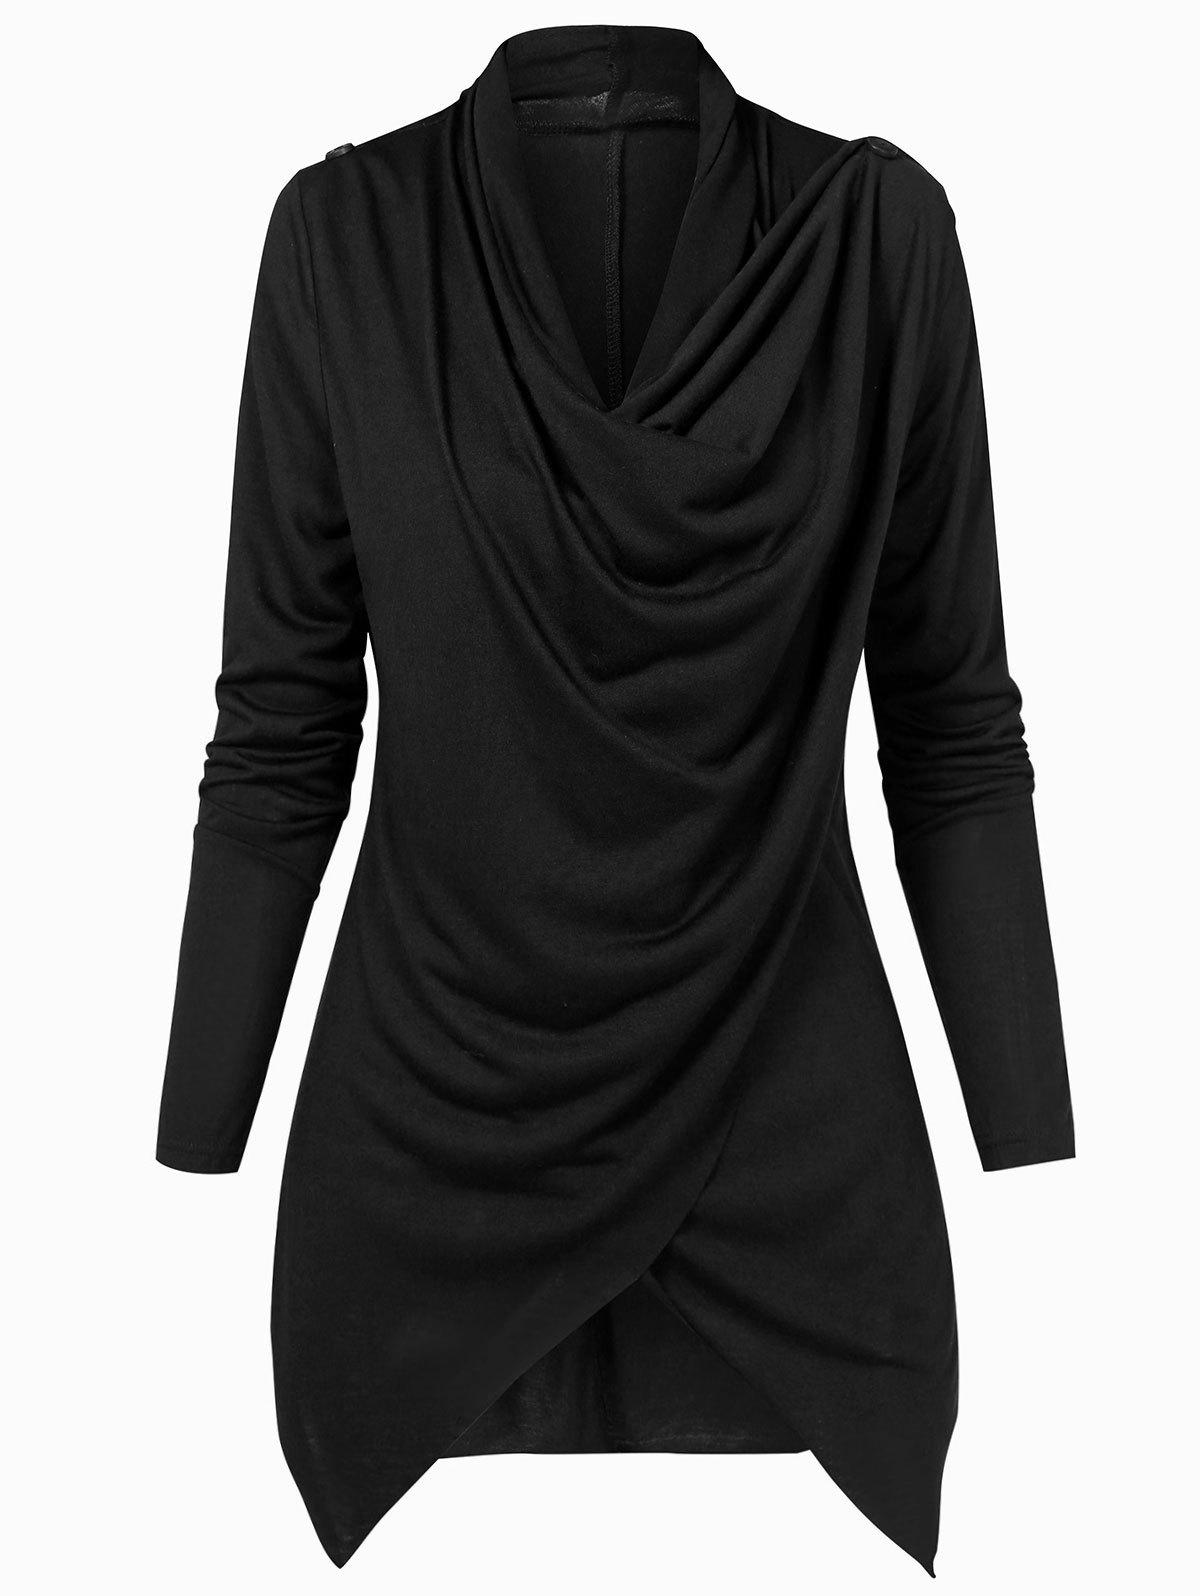 Unique Asymmetric Convertible Draped Cardigan